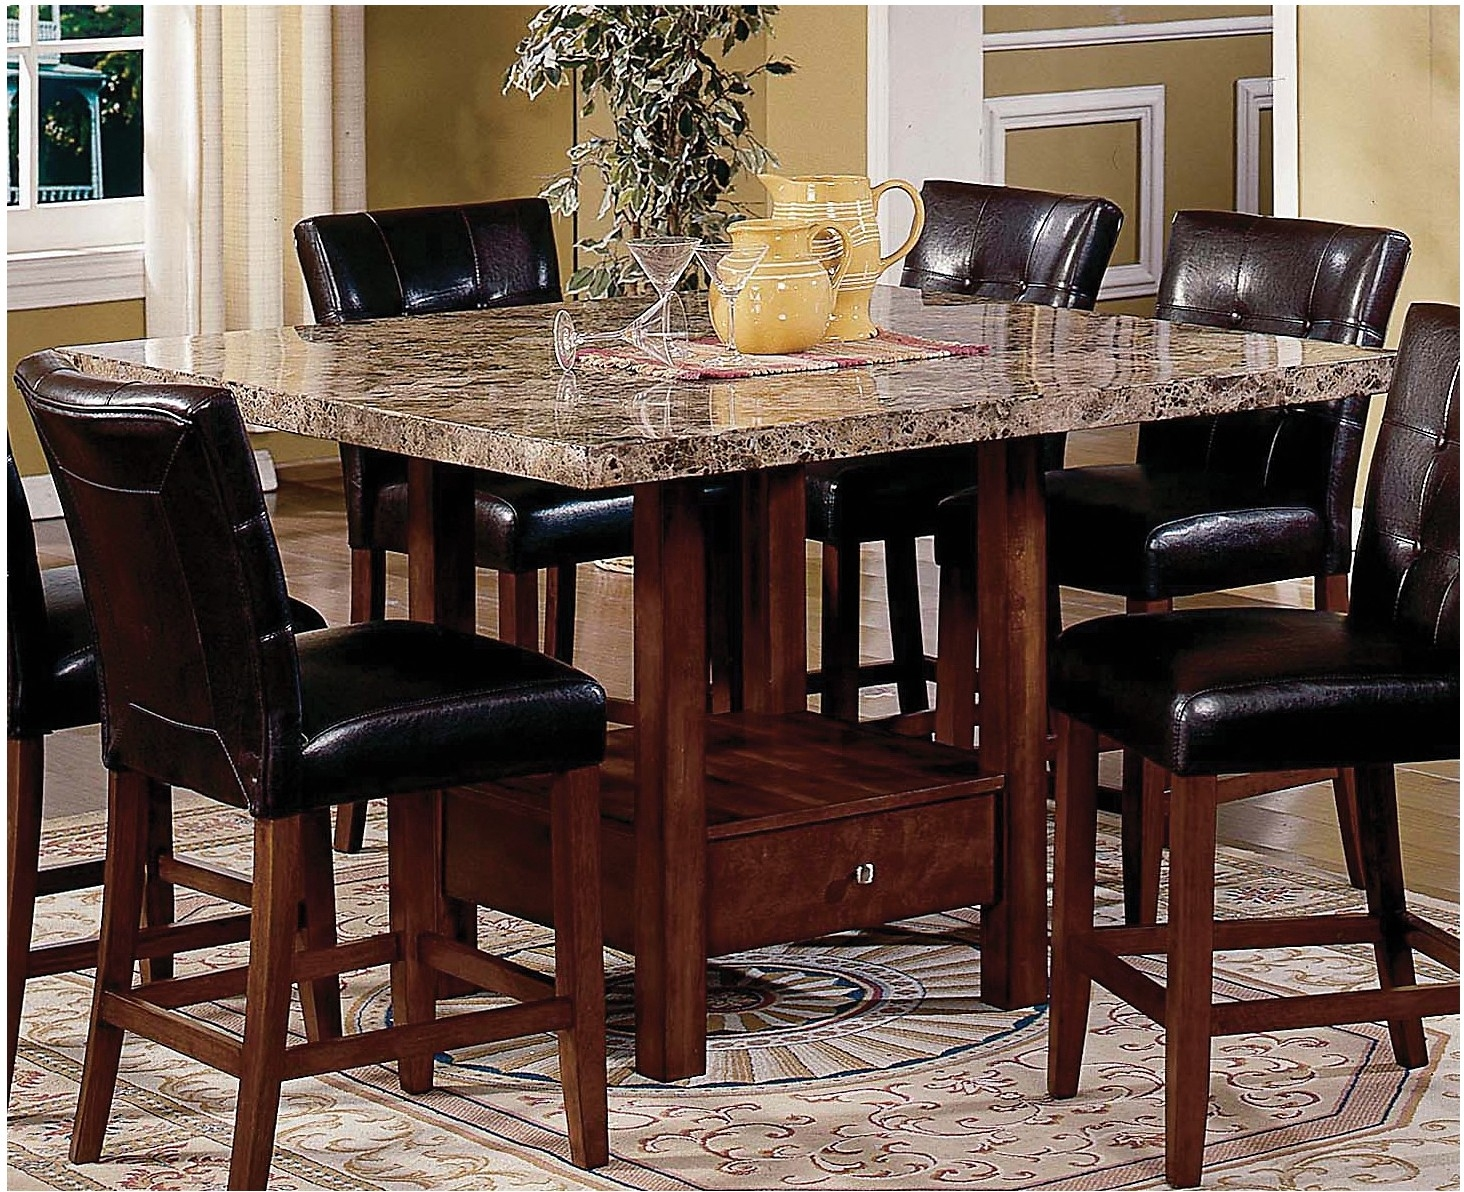 elegant dining table dining table bases 2 home ideas enhancedhomes org 664